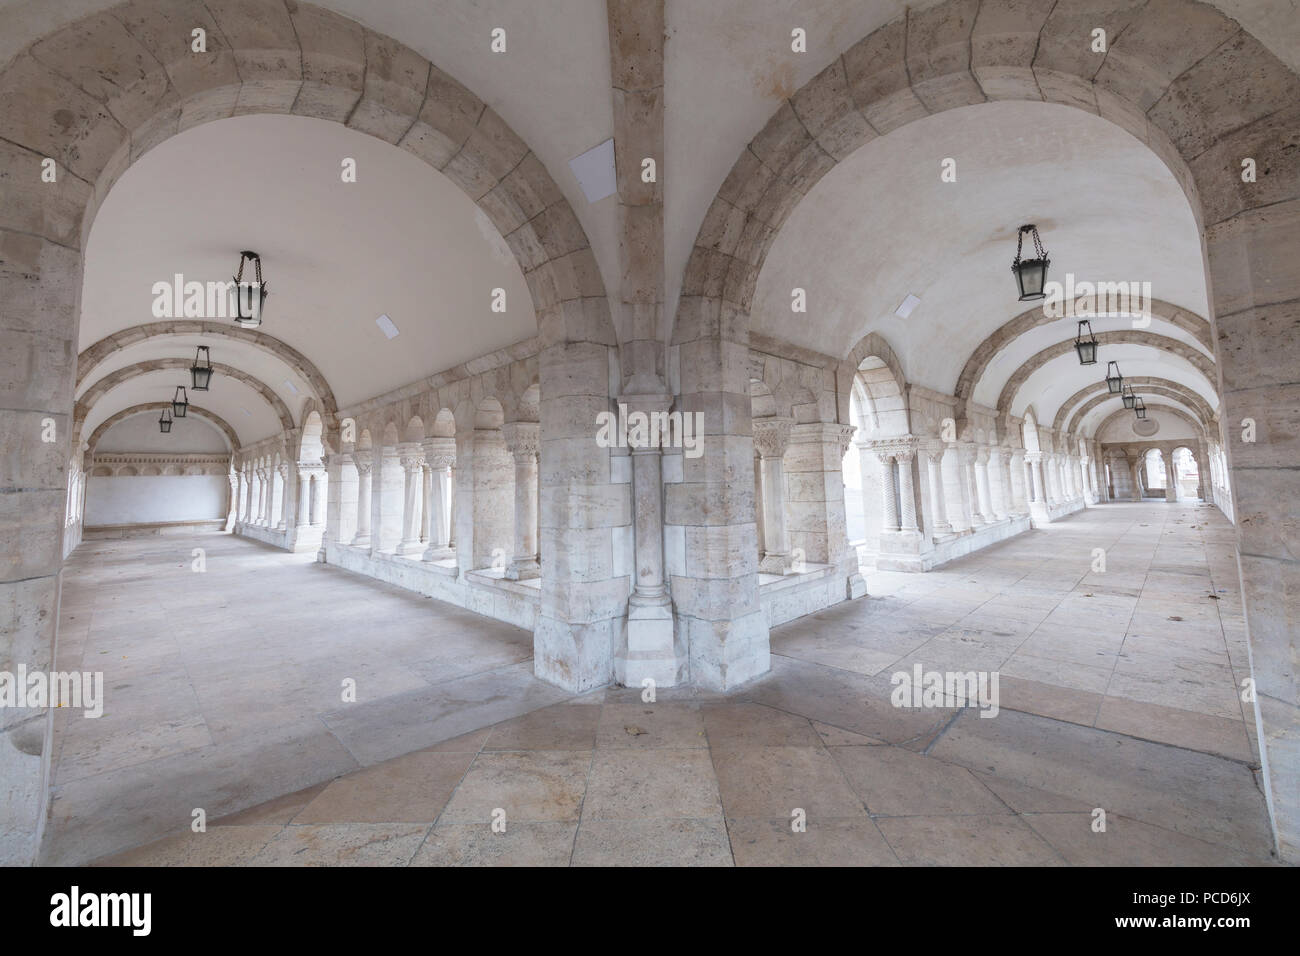 Archways, Fisherman's Bastion, Budapest, Hungary, Europe - Stock Image